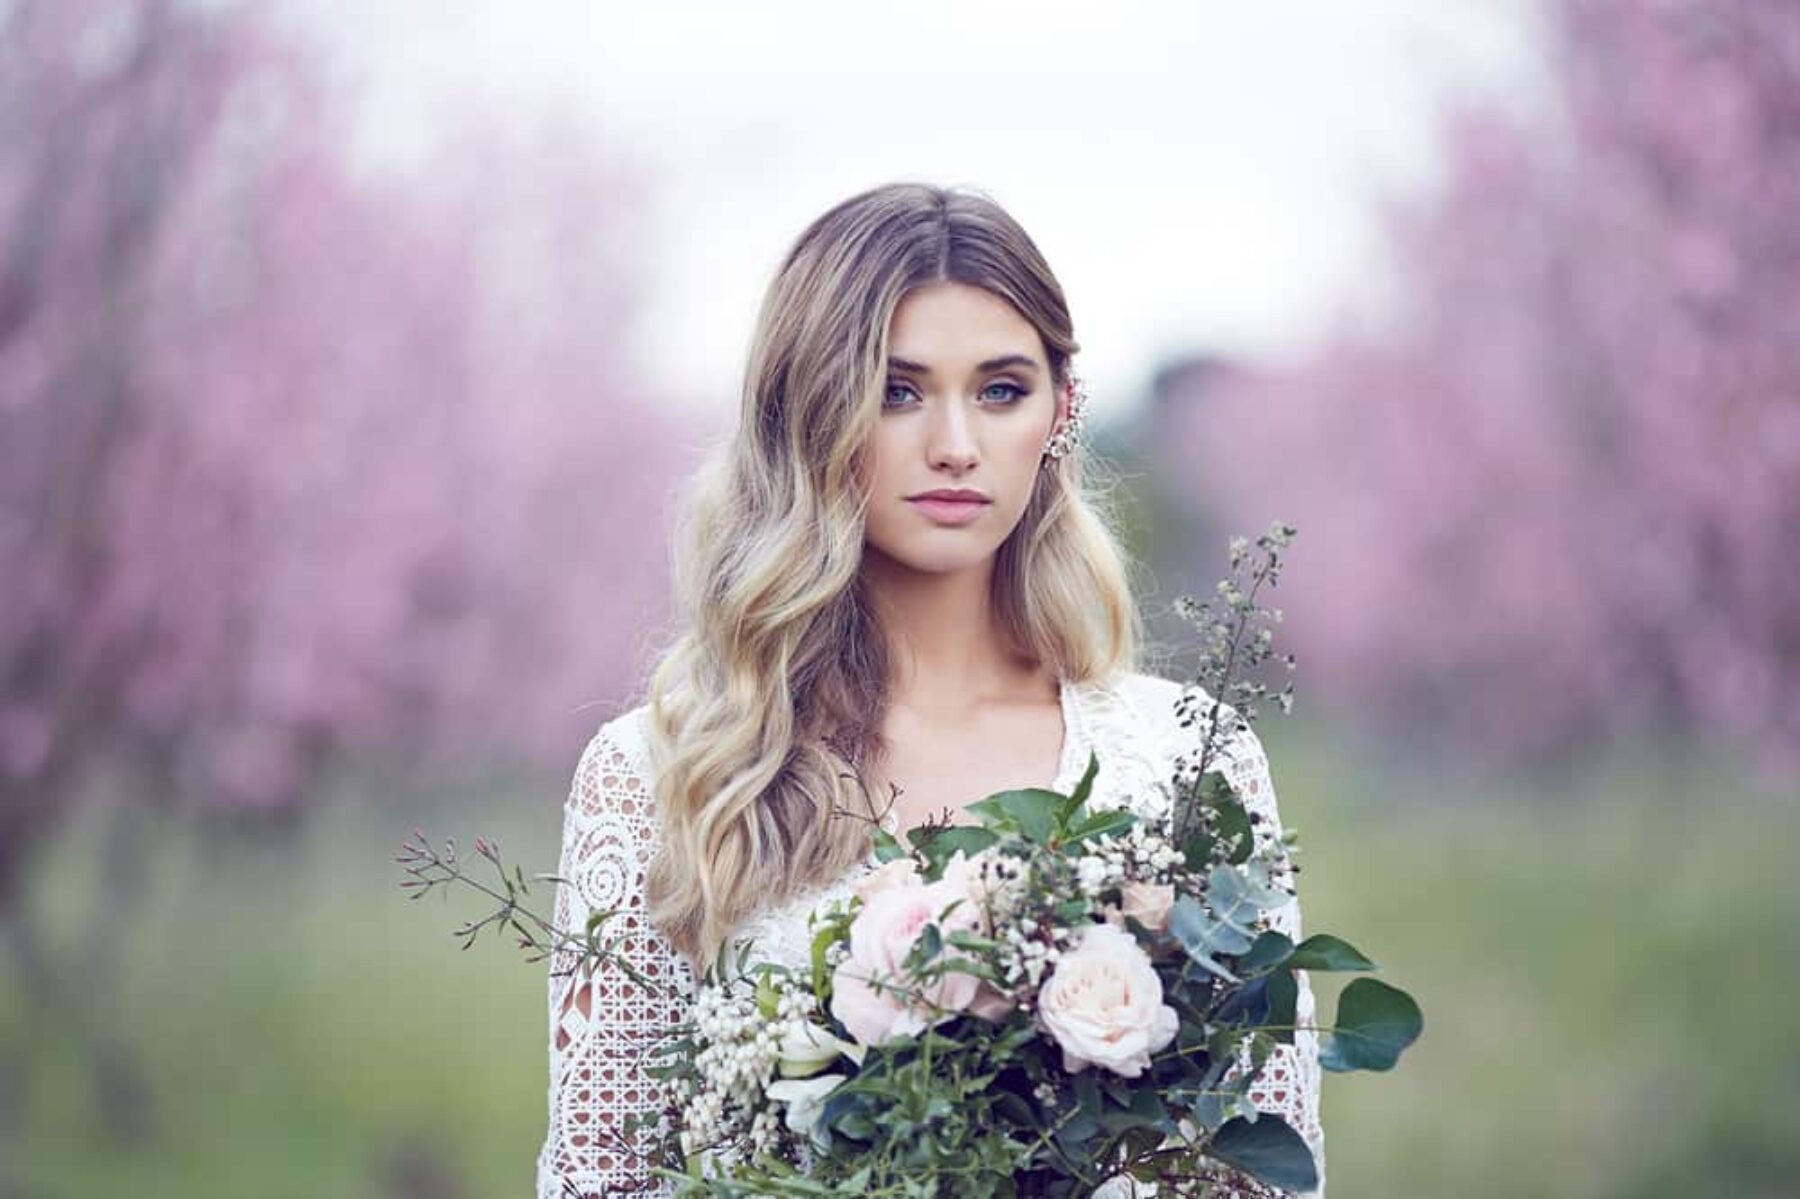 Spring wedding editorial by Lost in Love